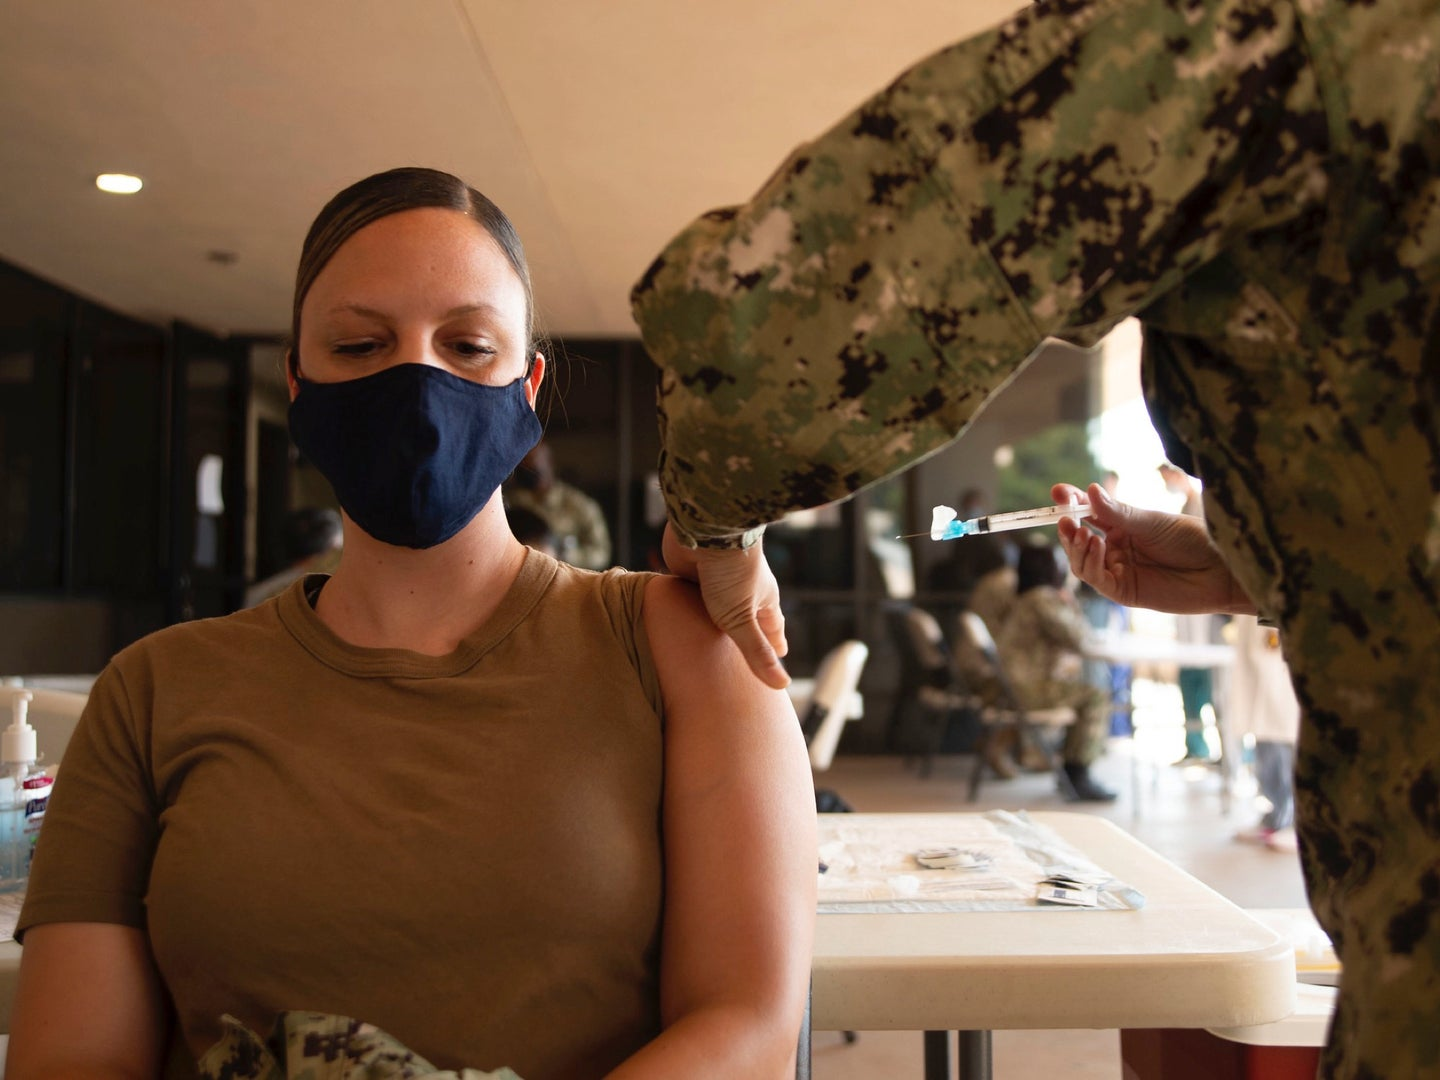 woman with a mask on gets a vaccine